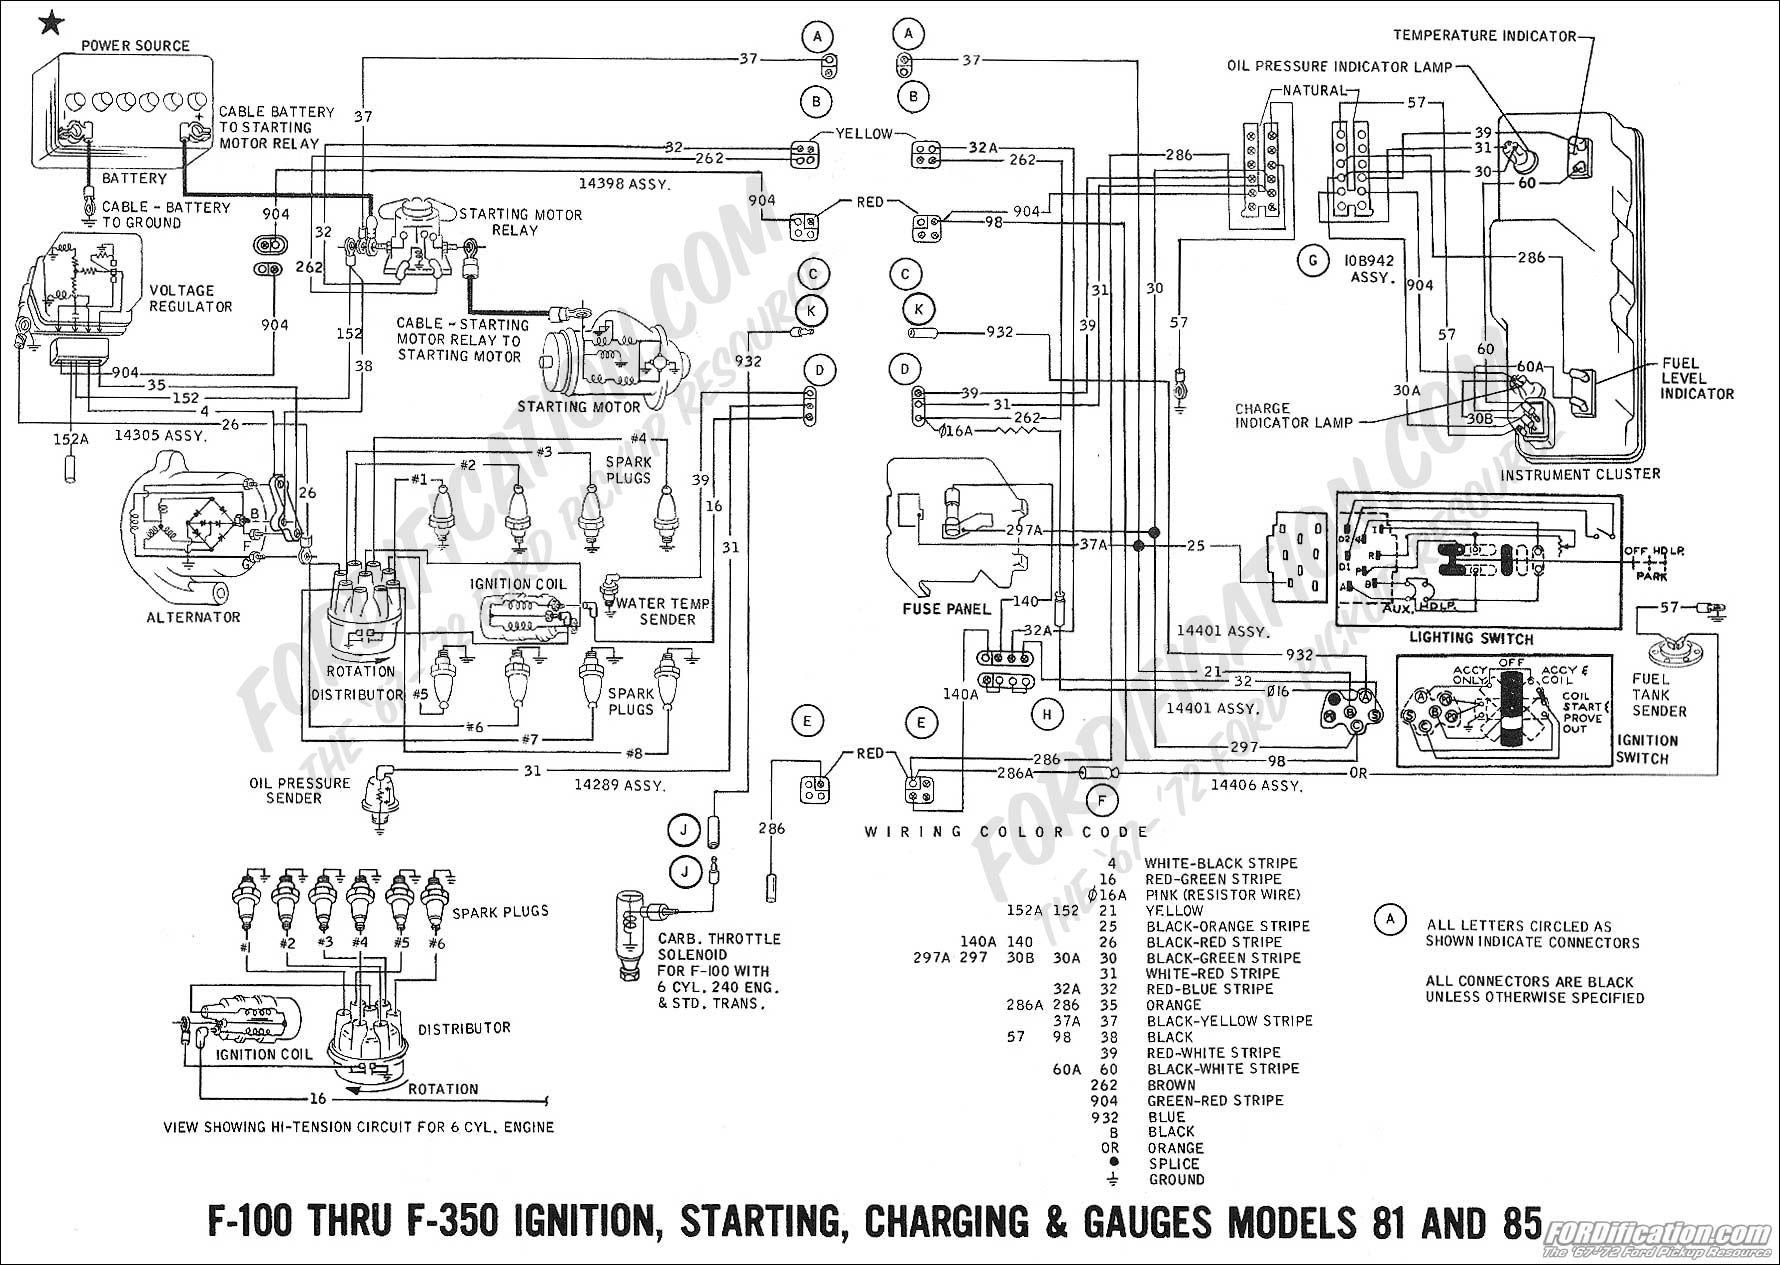 2002 Ford F150 Engine Diagram Econoline Wiring Also Thunderbird Dash Chevrolet F100 Of